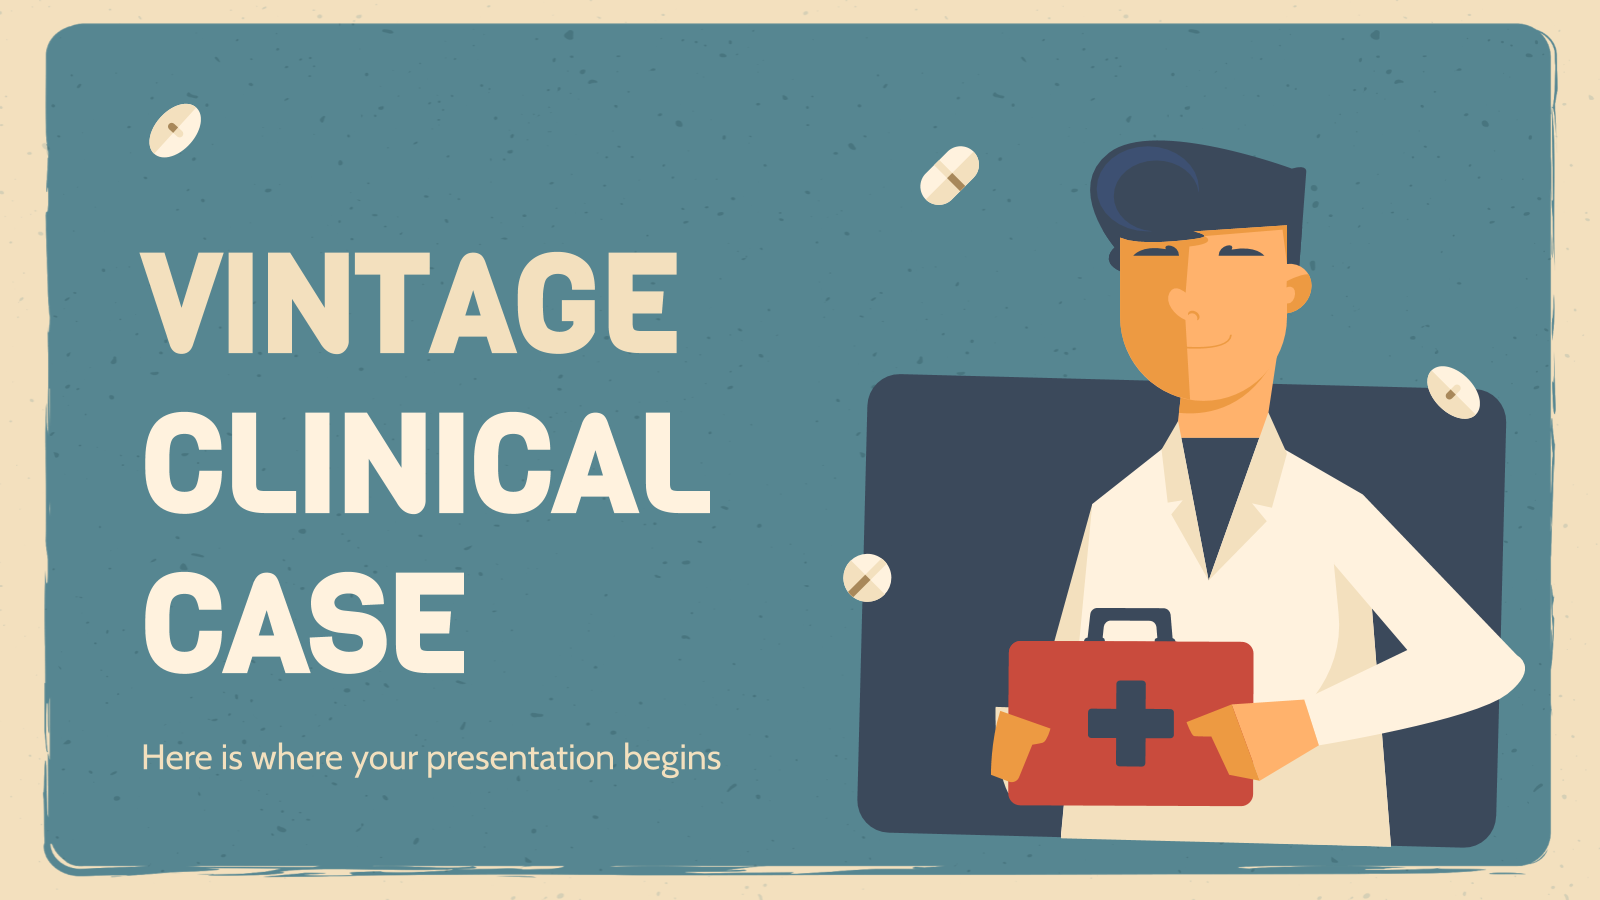 Vintage Clinical Case presentation template